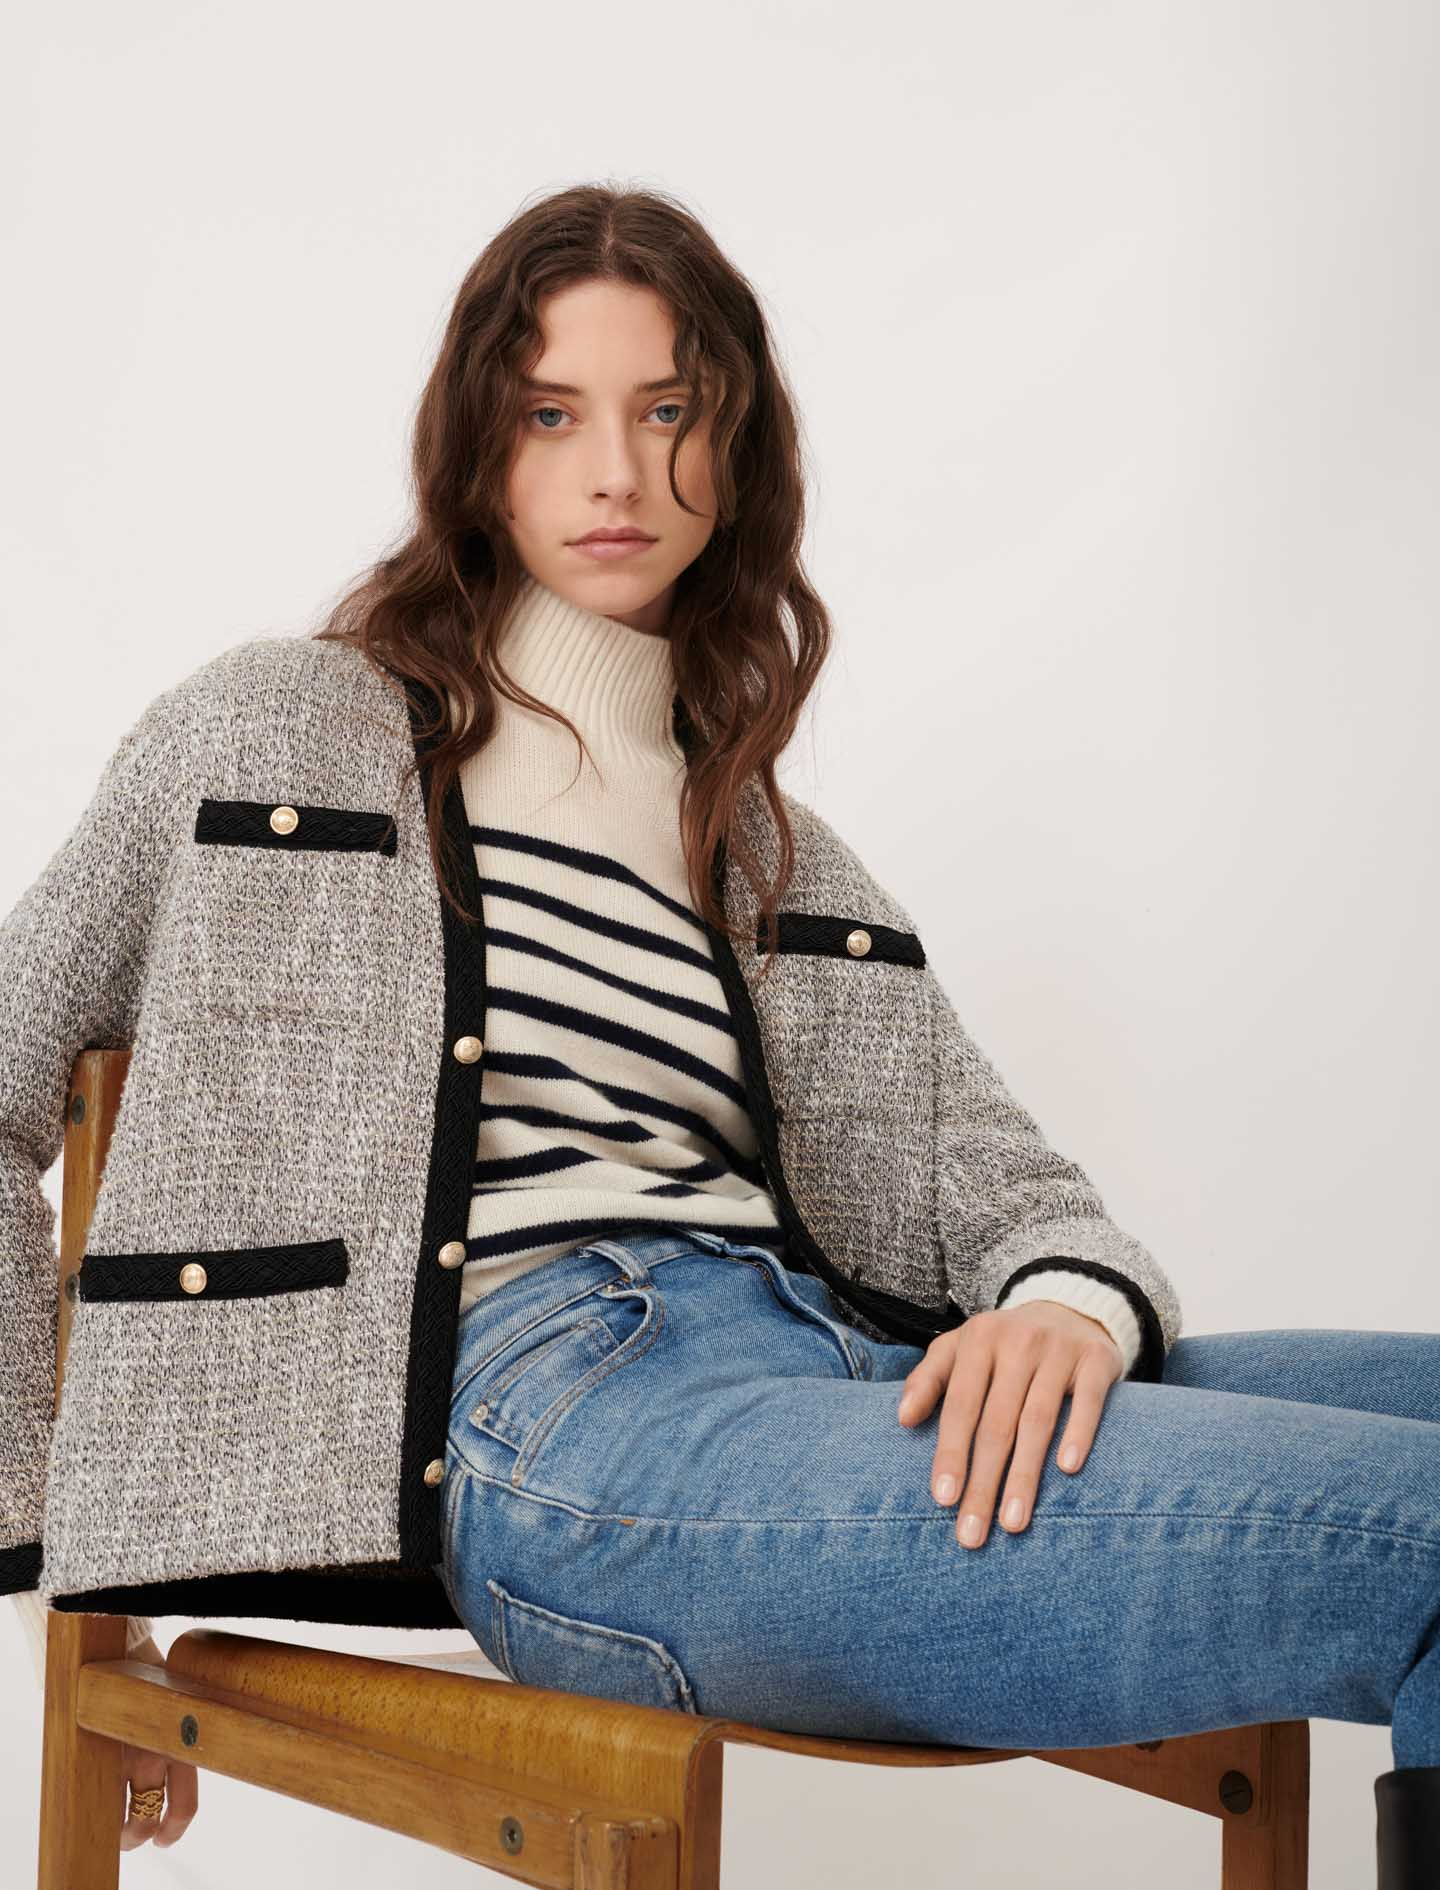 Tweed-style jacket with contrast details - Silver